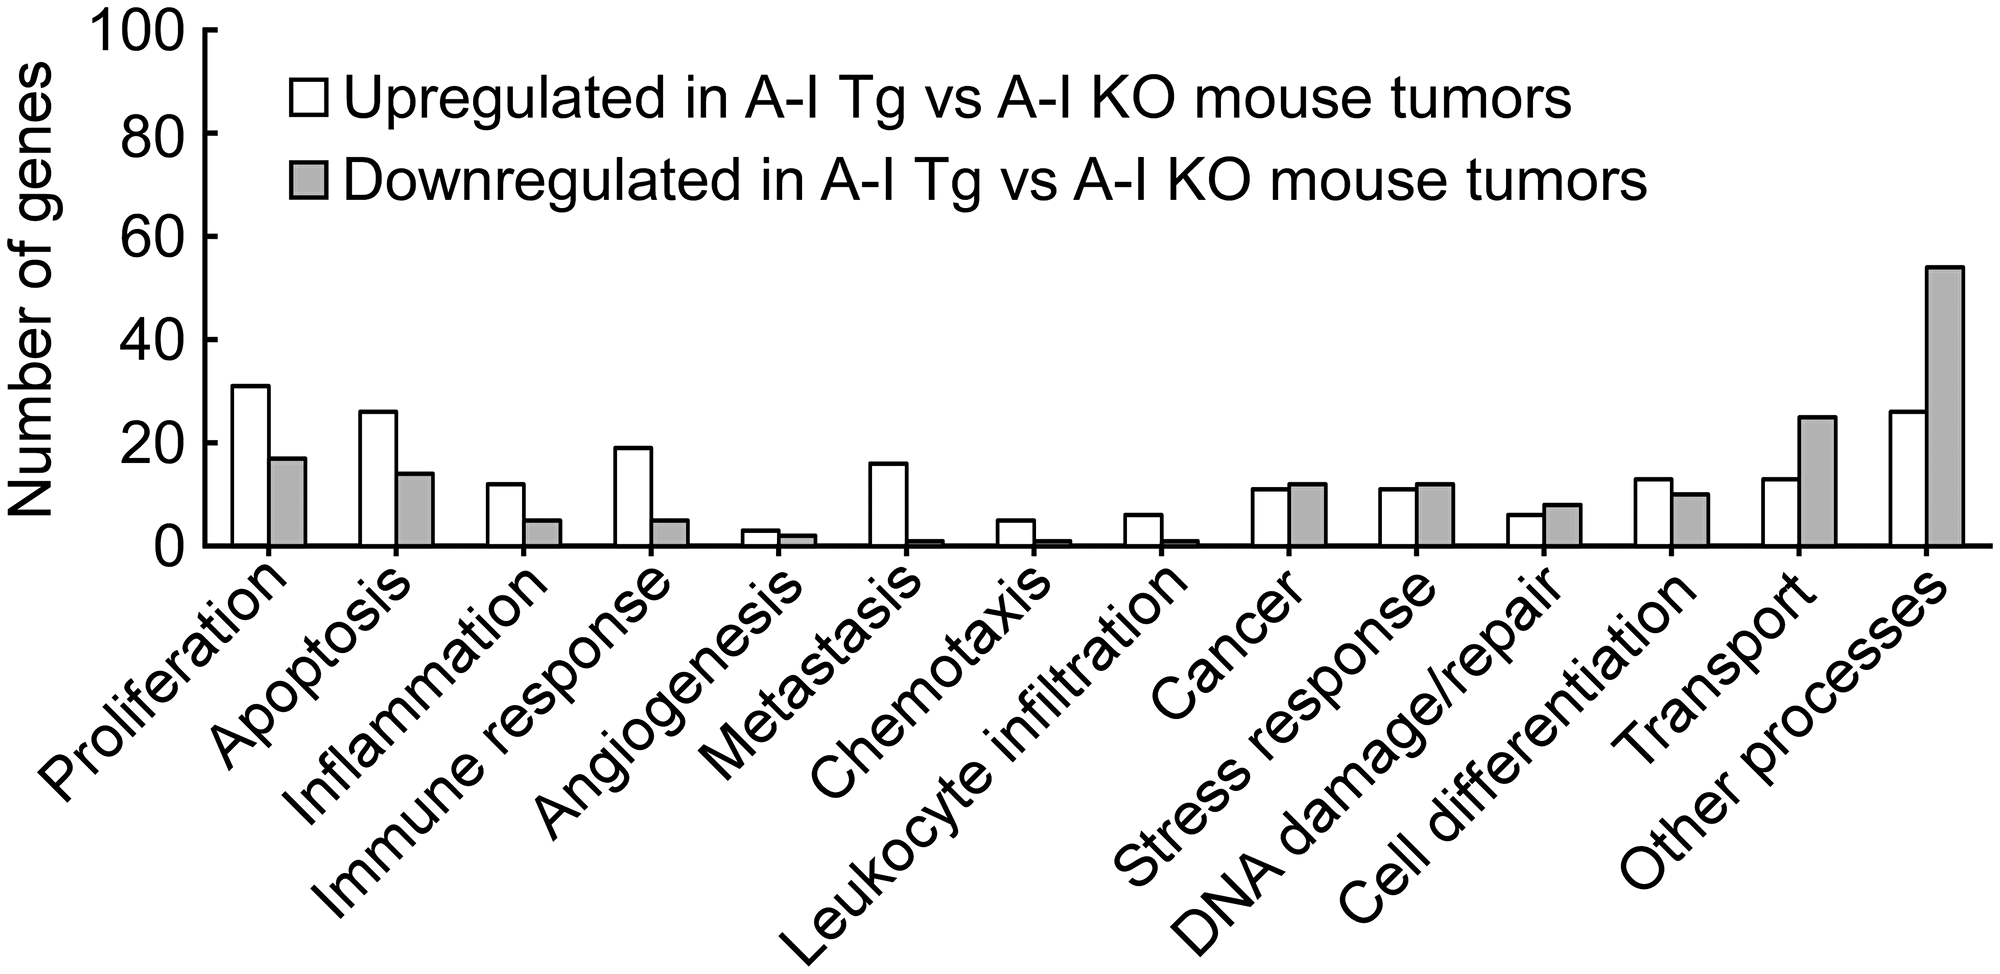 Genes from differential analysis of B16F10L tumors from A-I Tg+/– versus A-I KO mapped to key cancer related biological processes.